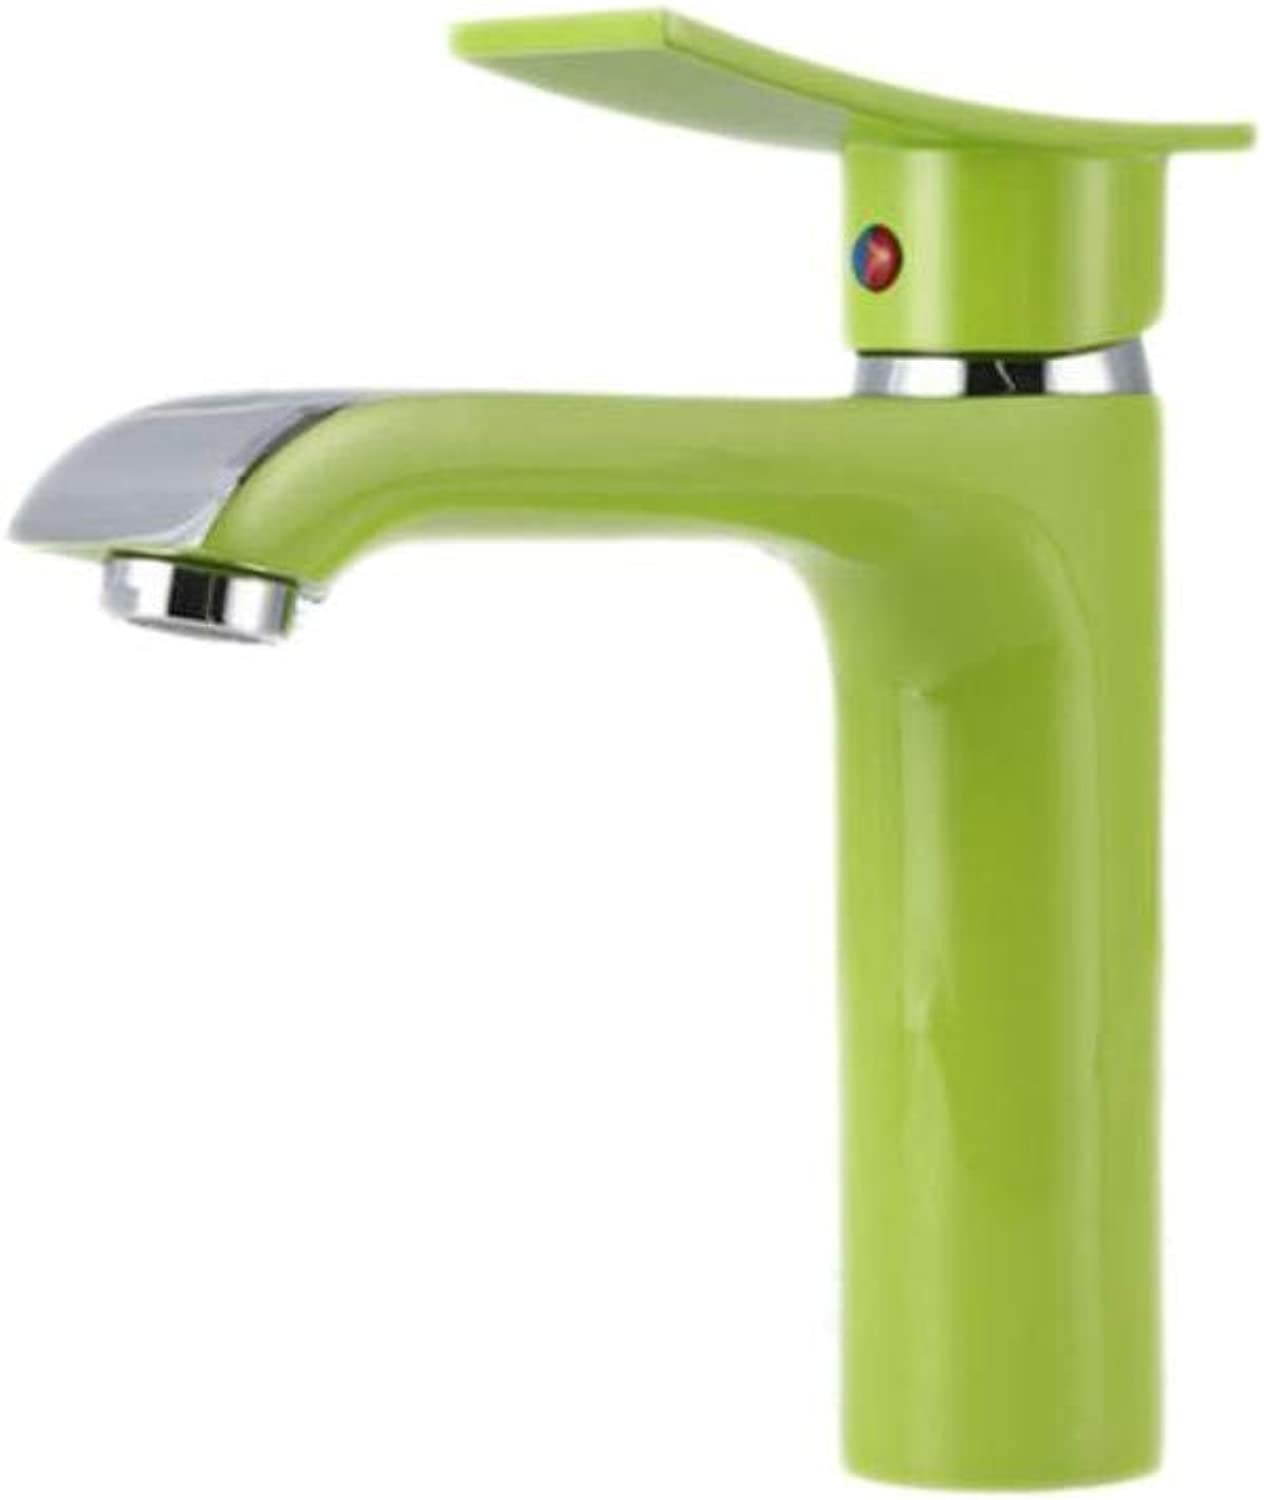 Bathroom Faucet Green Bathroom Basin Faucet with Solid Brass Basin Sink Faucet by Top Quality Polished Chrome Bathroom Mixer Tap